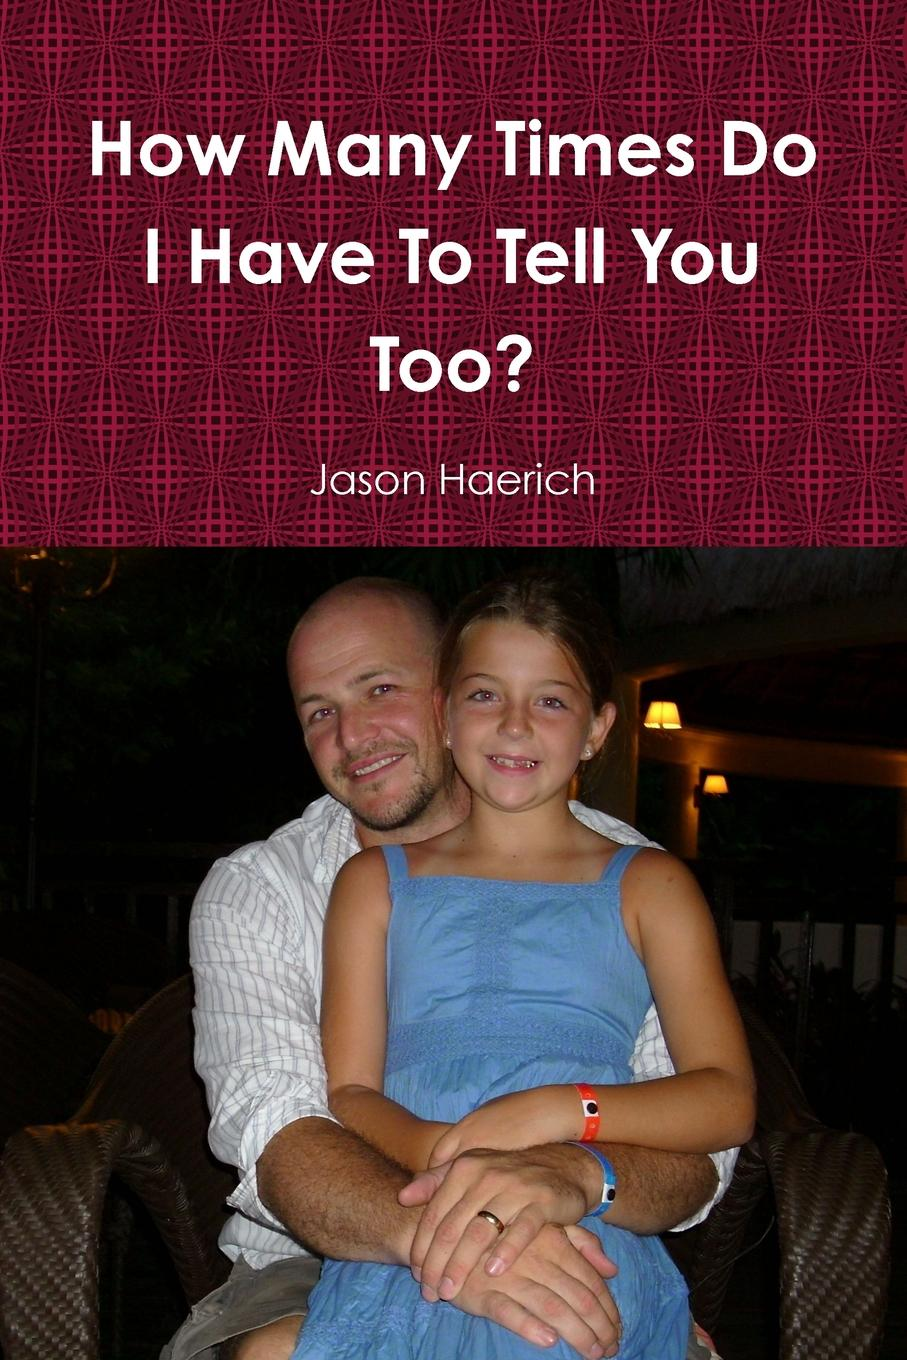 Jason Haerich How Many Times Do I Have To Tell You Too.